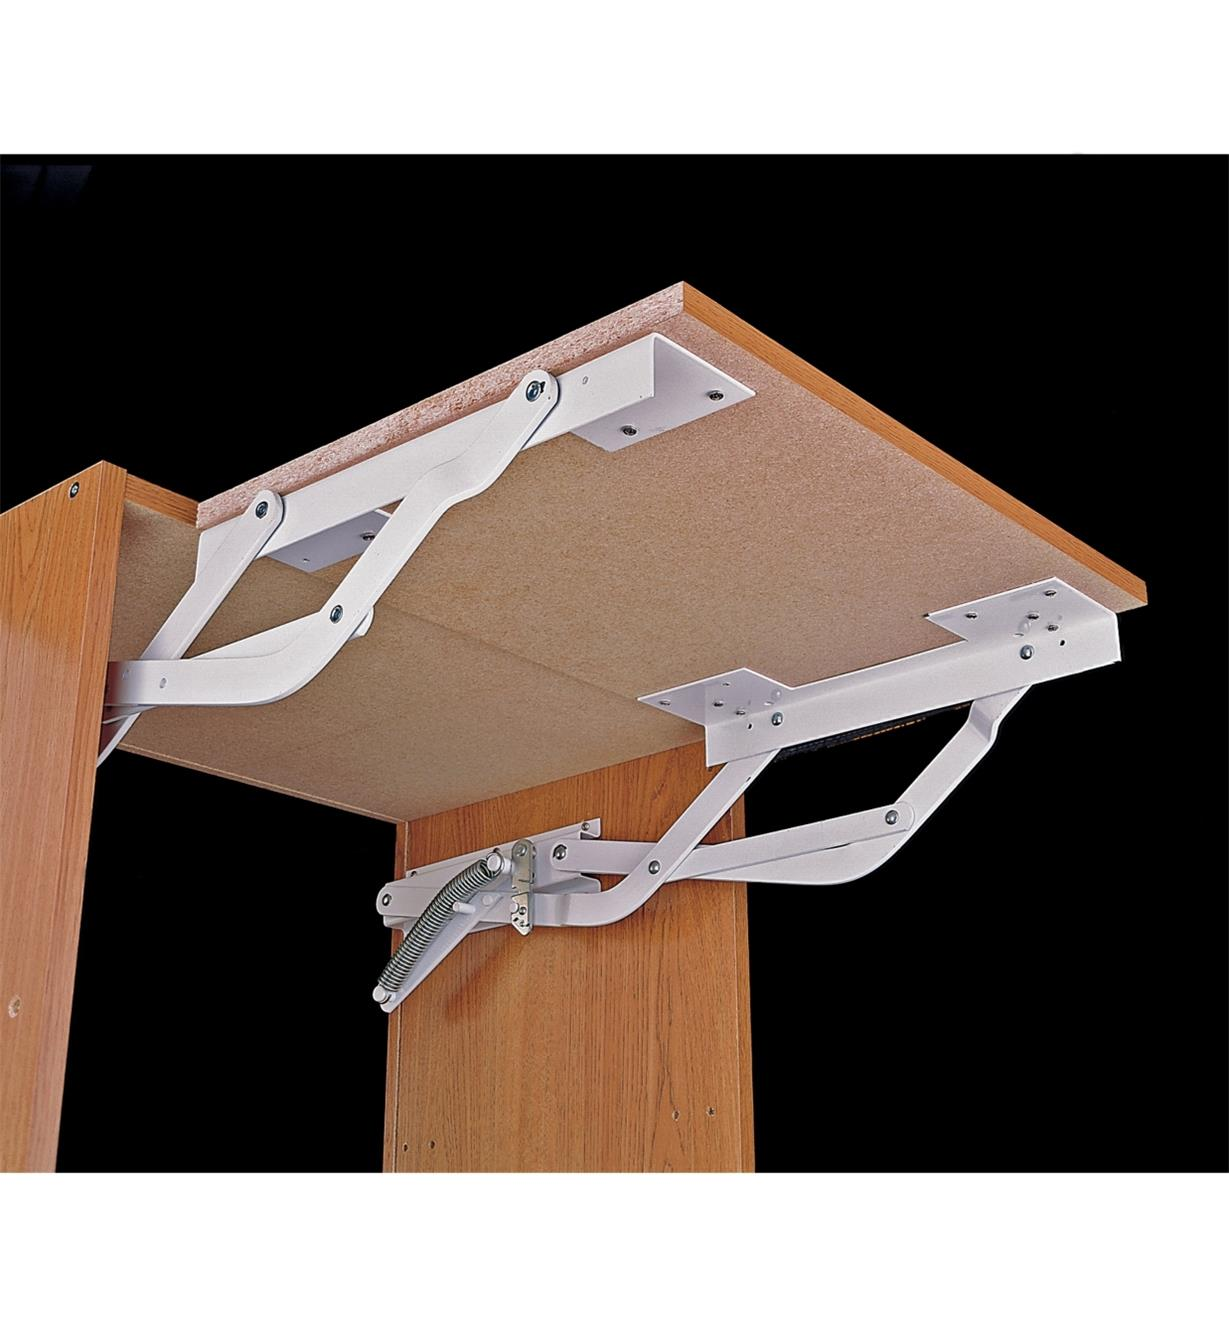 A swing-up shelf made with the Appliance Lifter Brackets